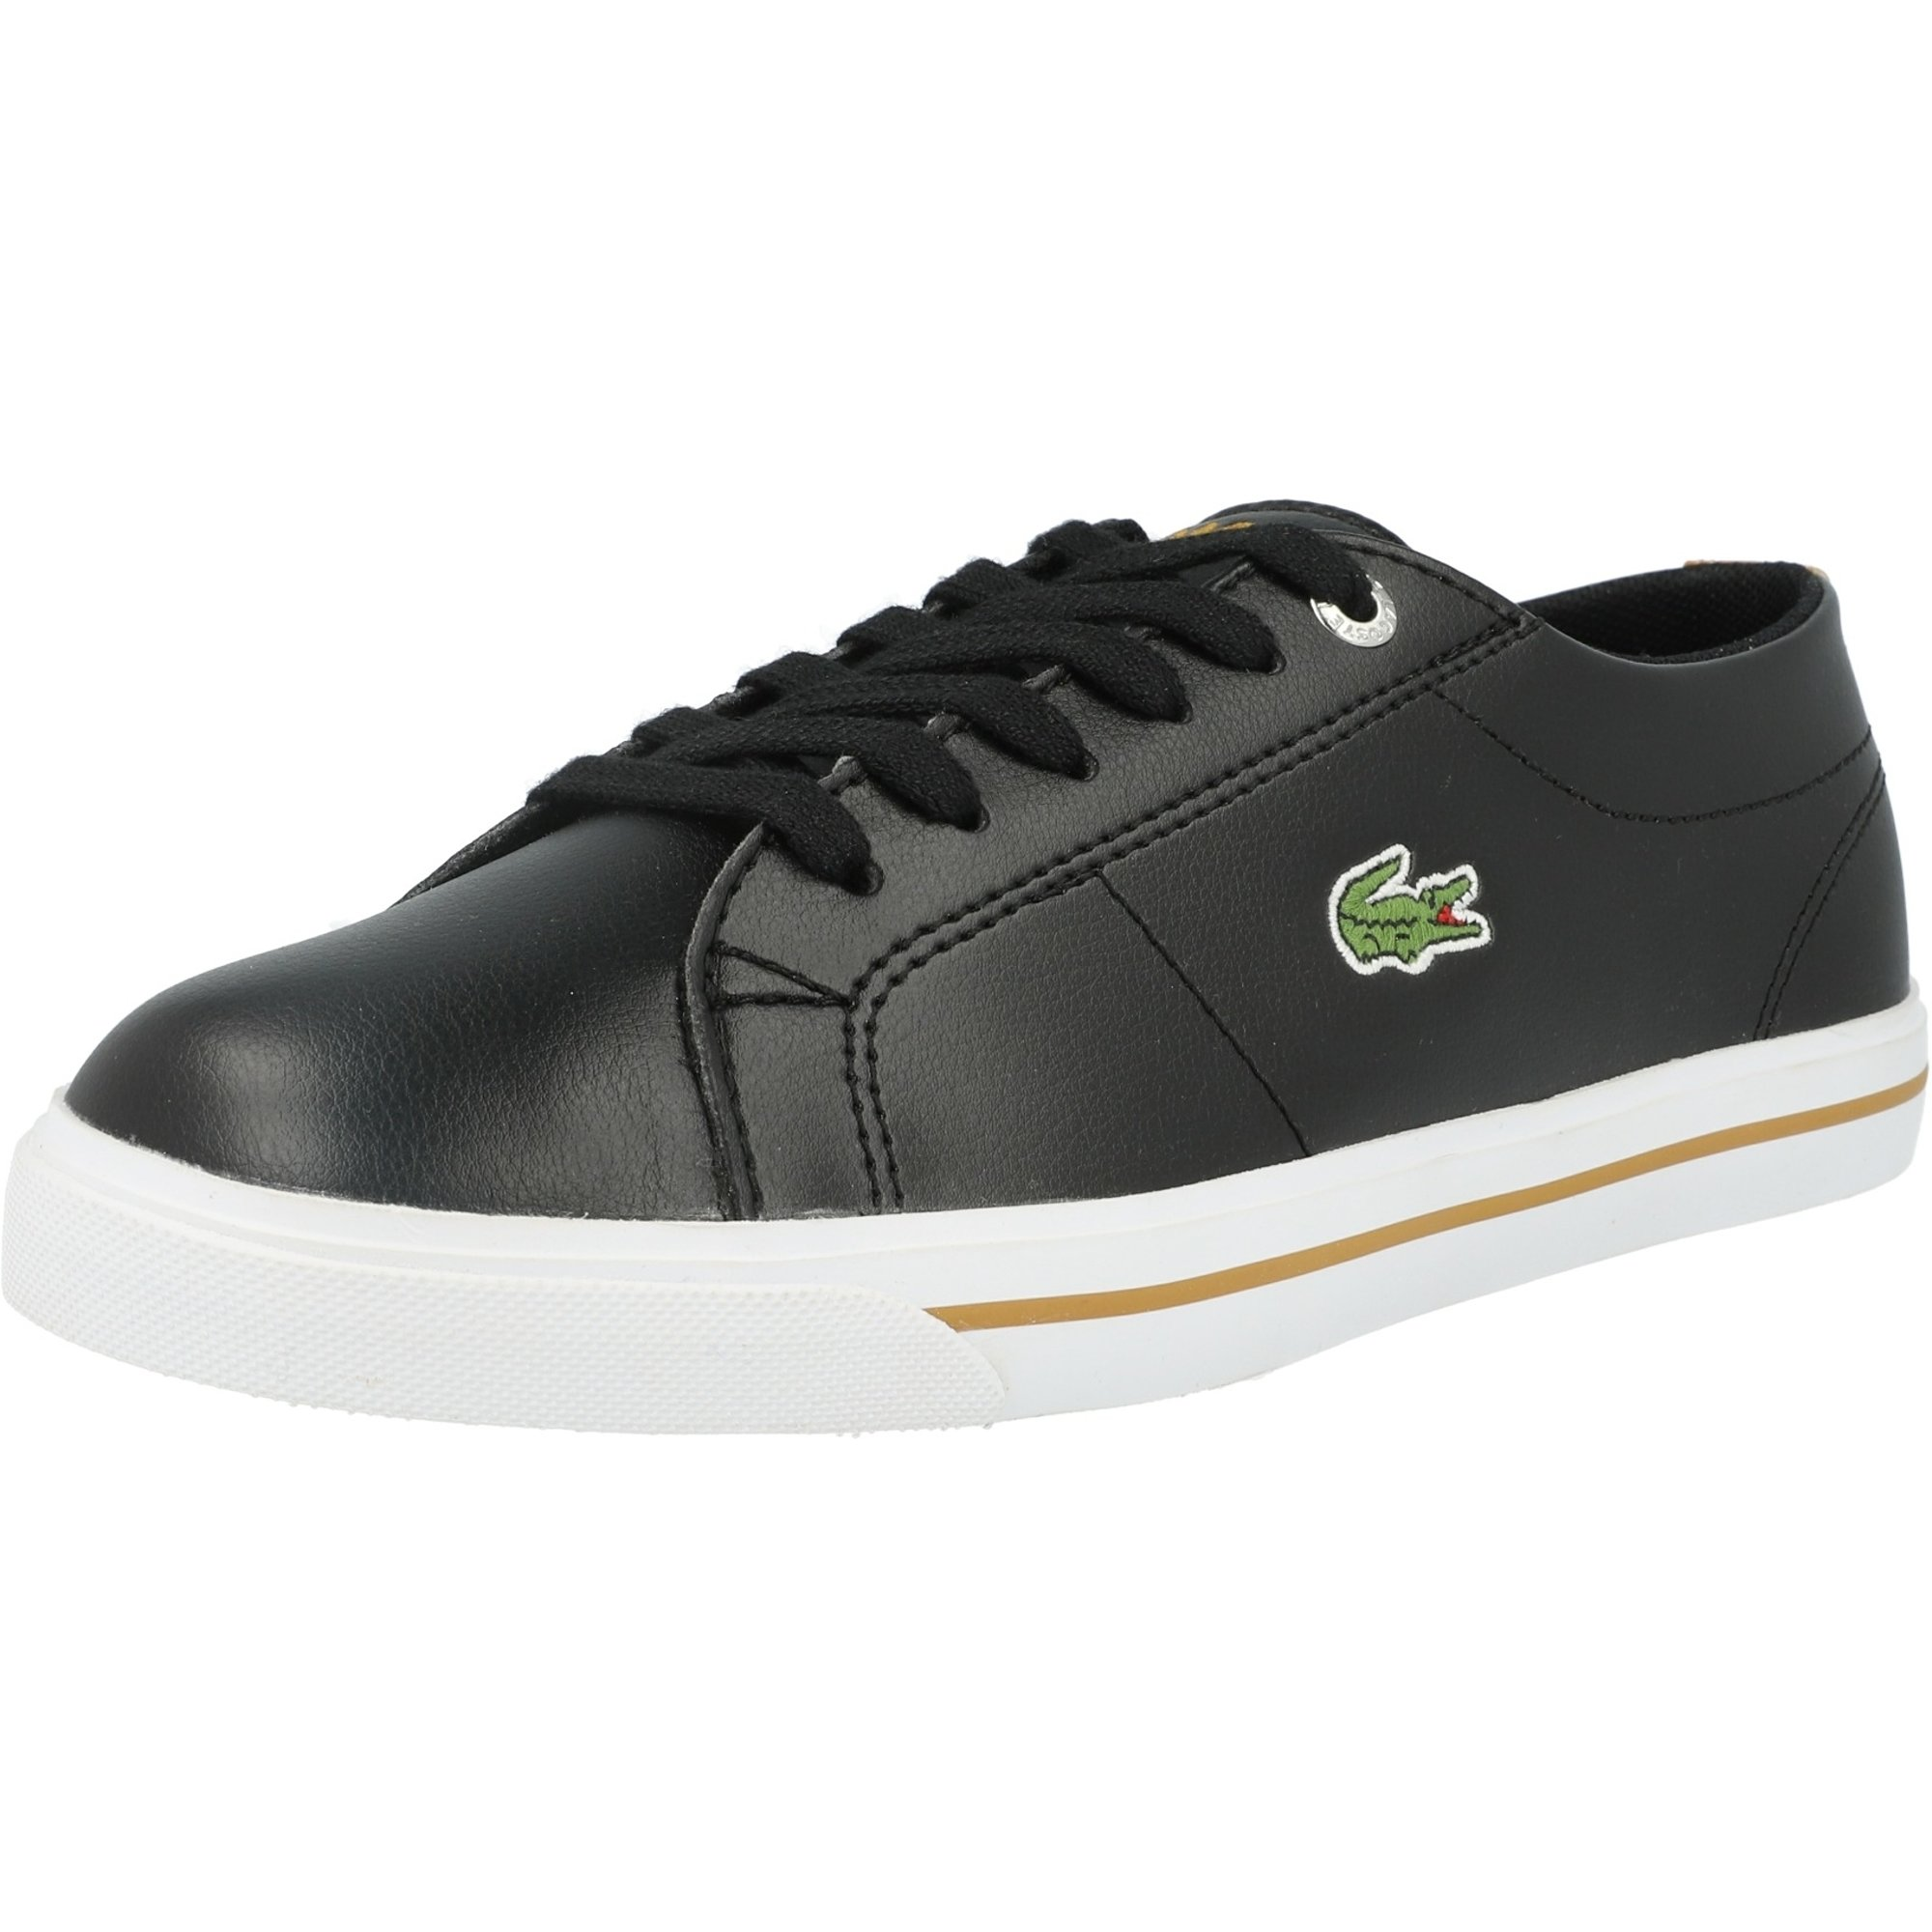 Lacoste Riberac 418 1 Black/Dark Tan Synthetic